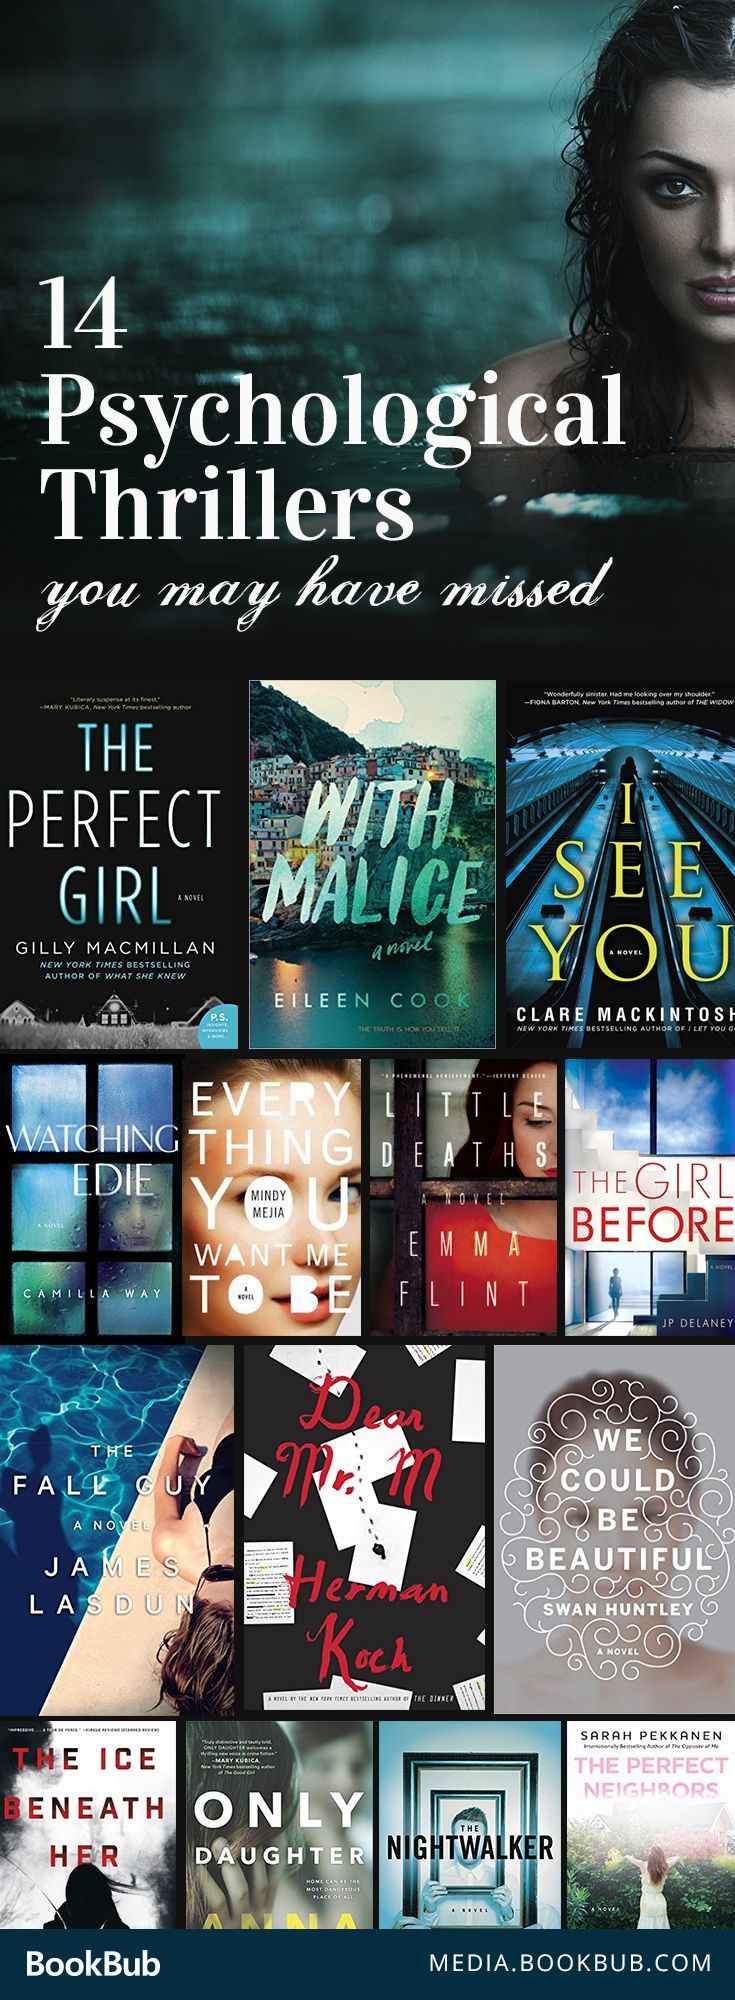 14 suspenseful books - psychological thrillers you probably haven't read, but should. If you loved Gone Girl or The Girl on the Train, this book list is for you!